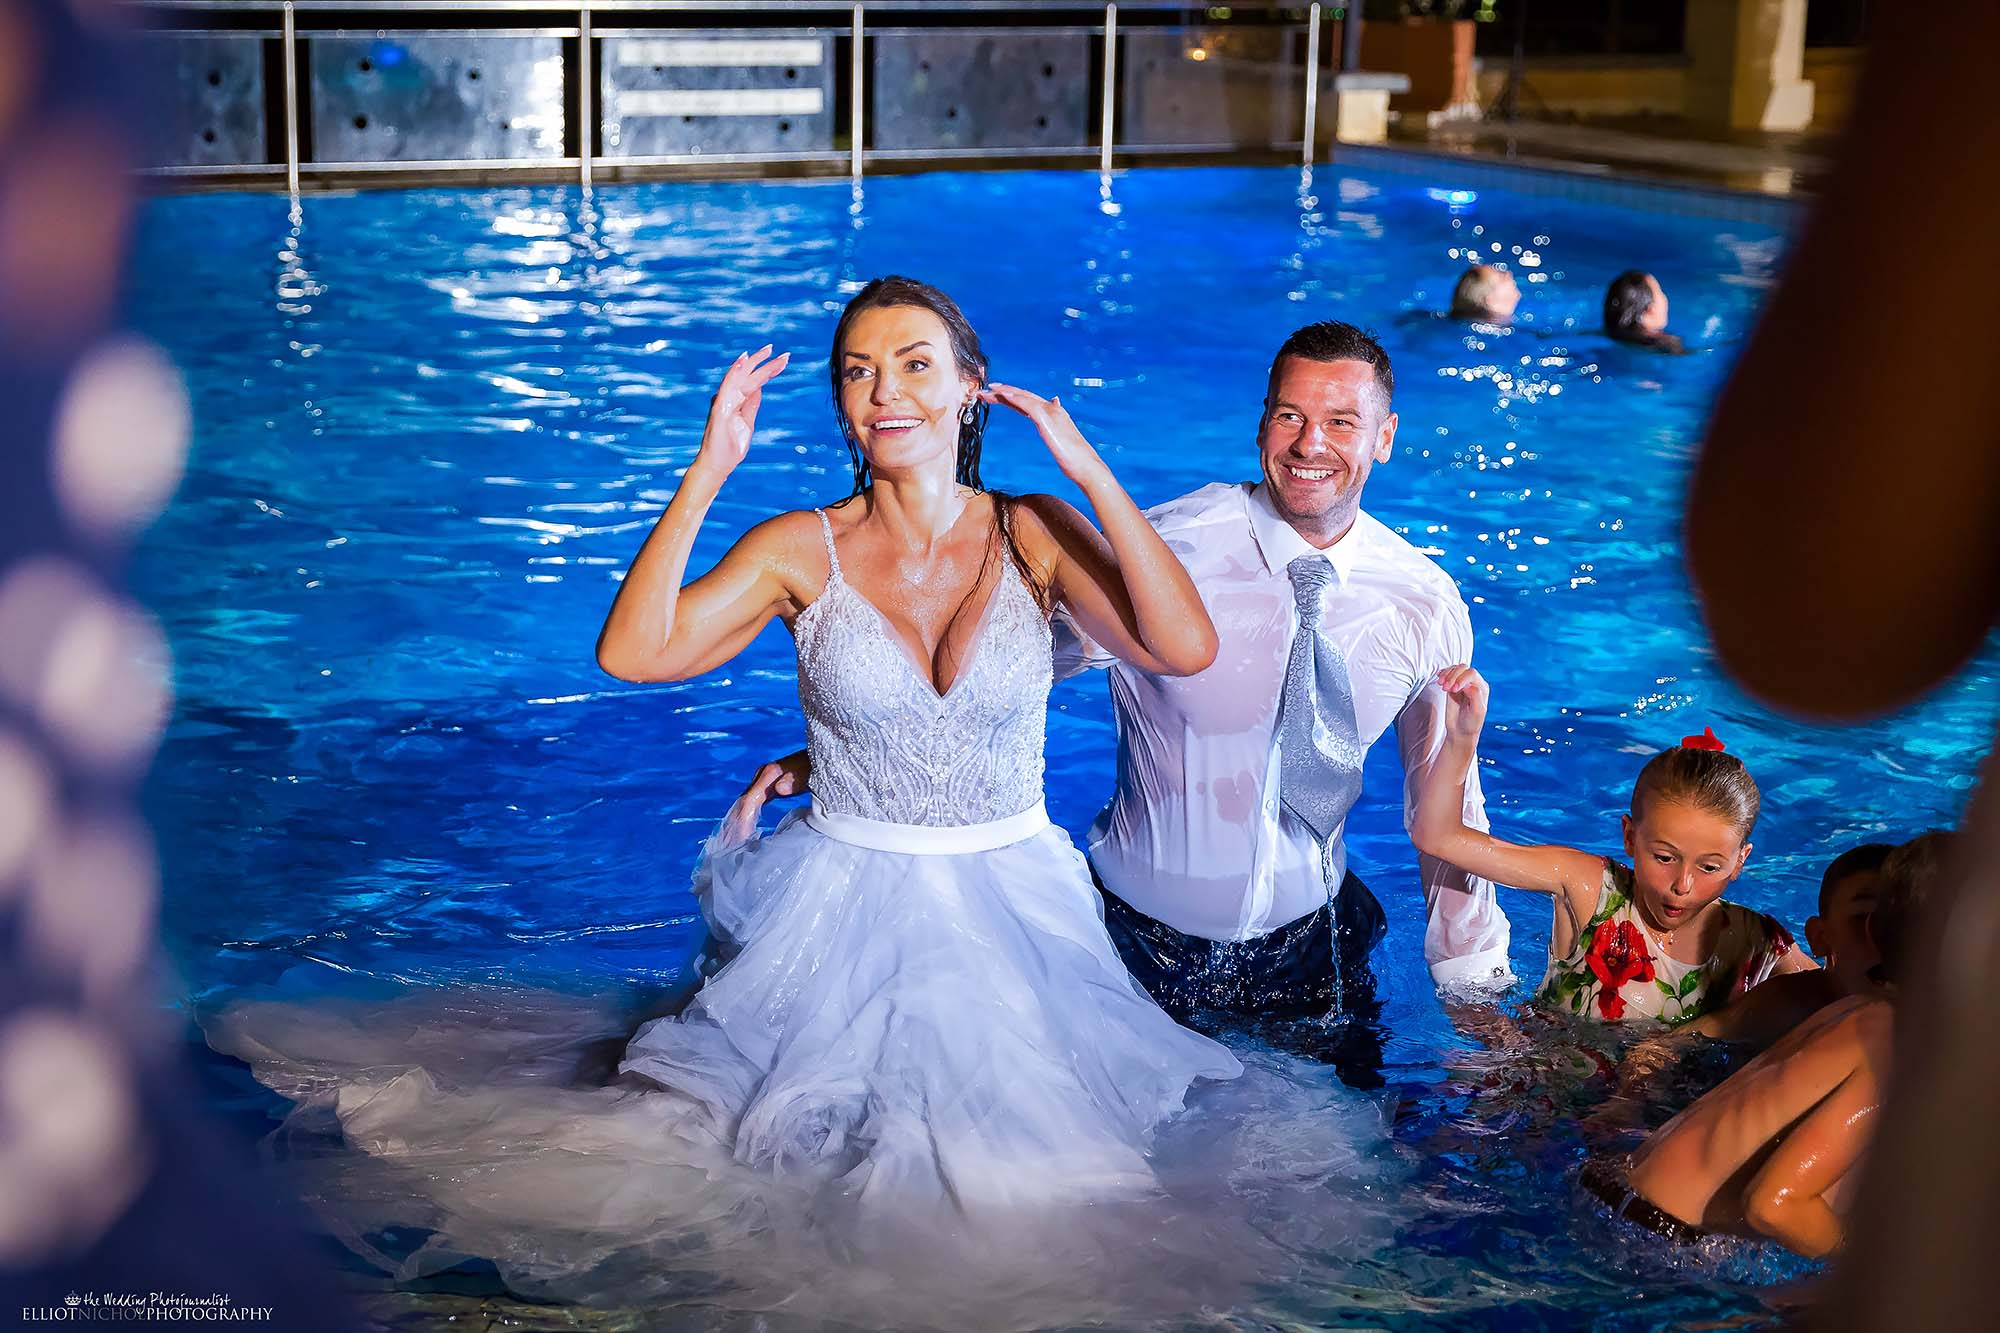 Bride and groom in the swimming pool after jumping in with their wedding guests.